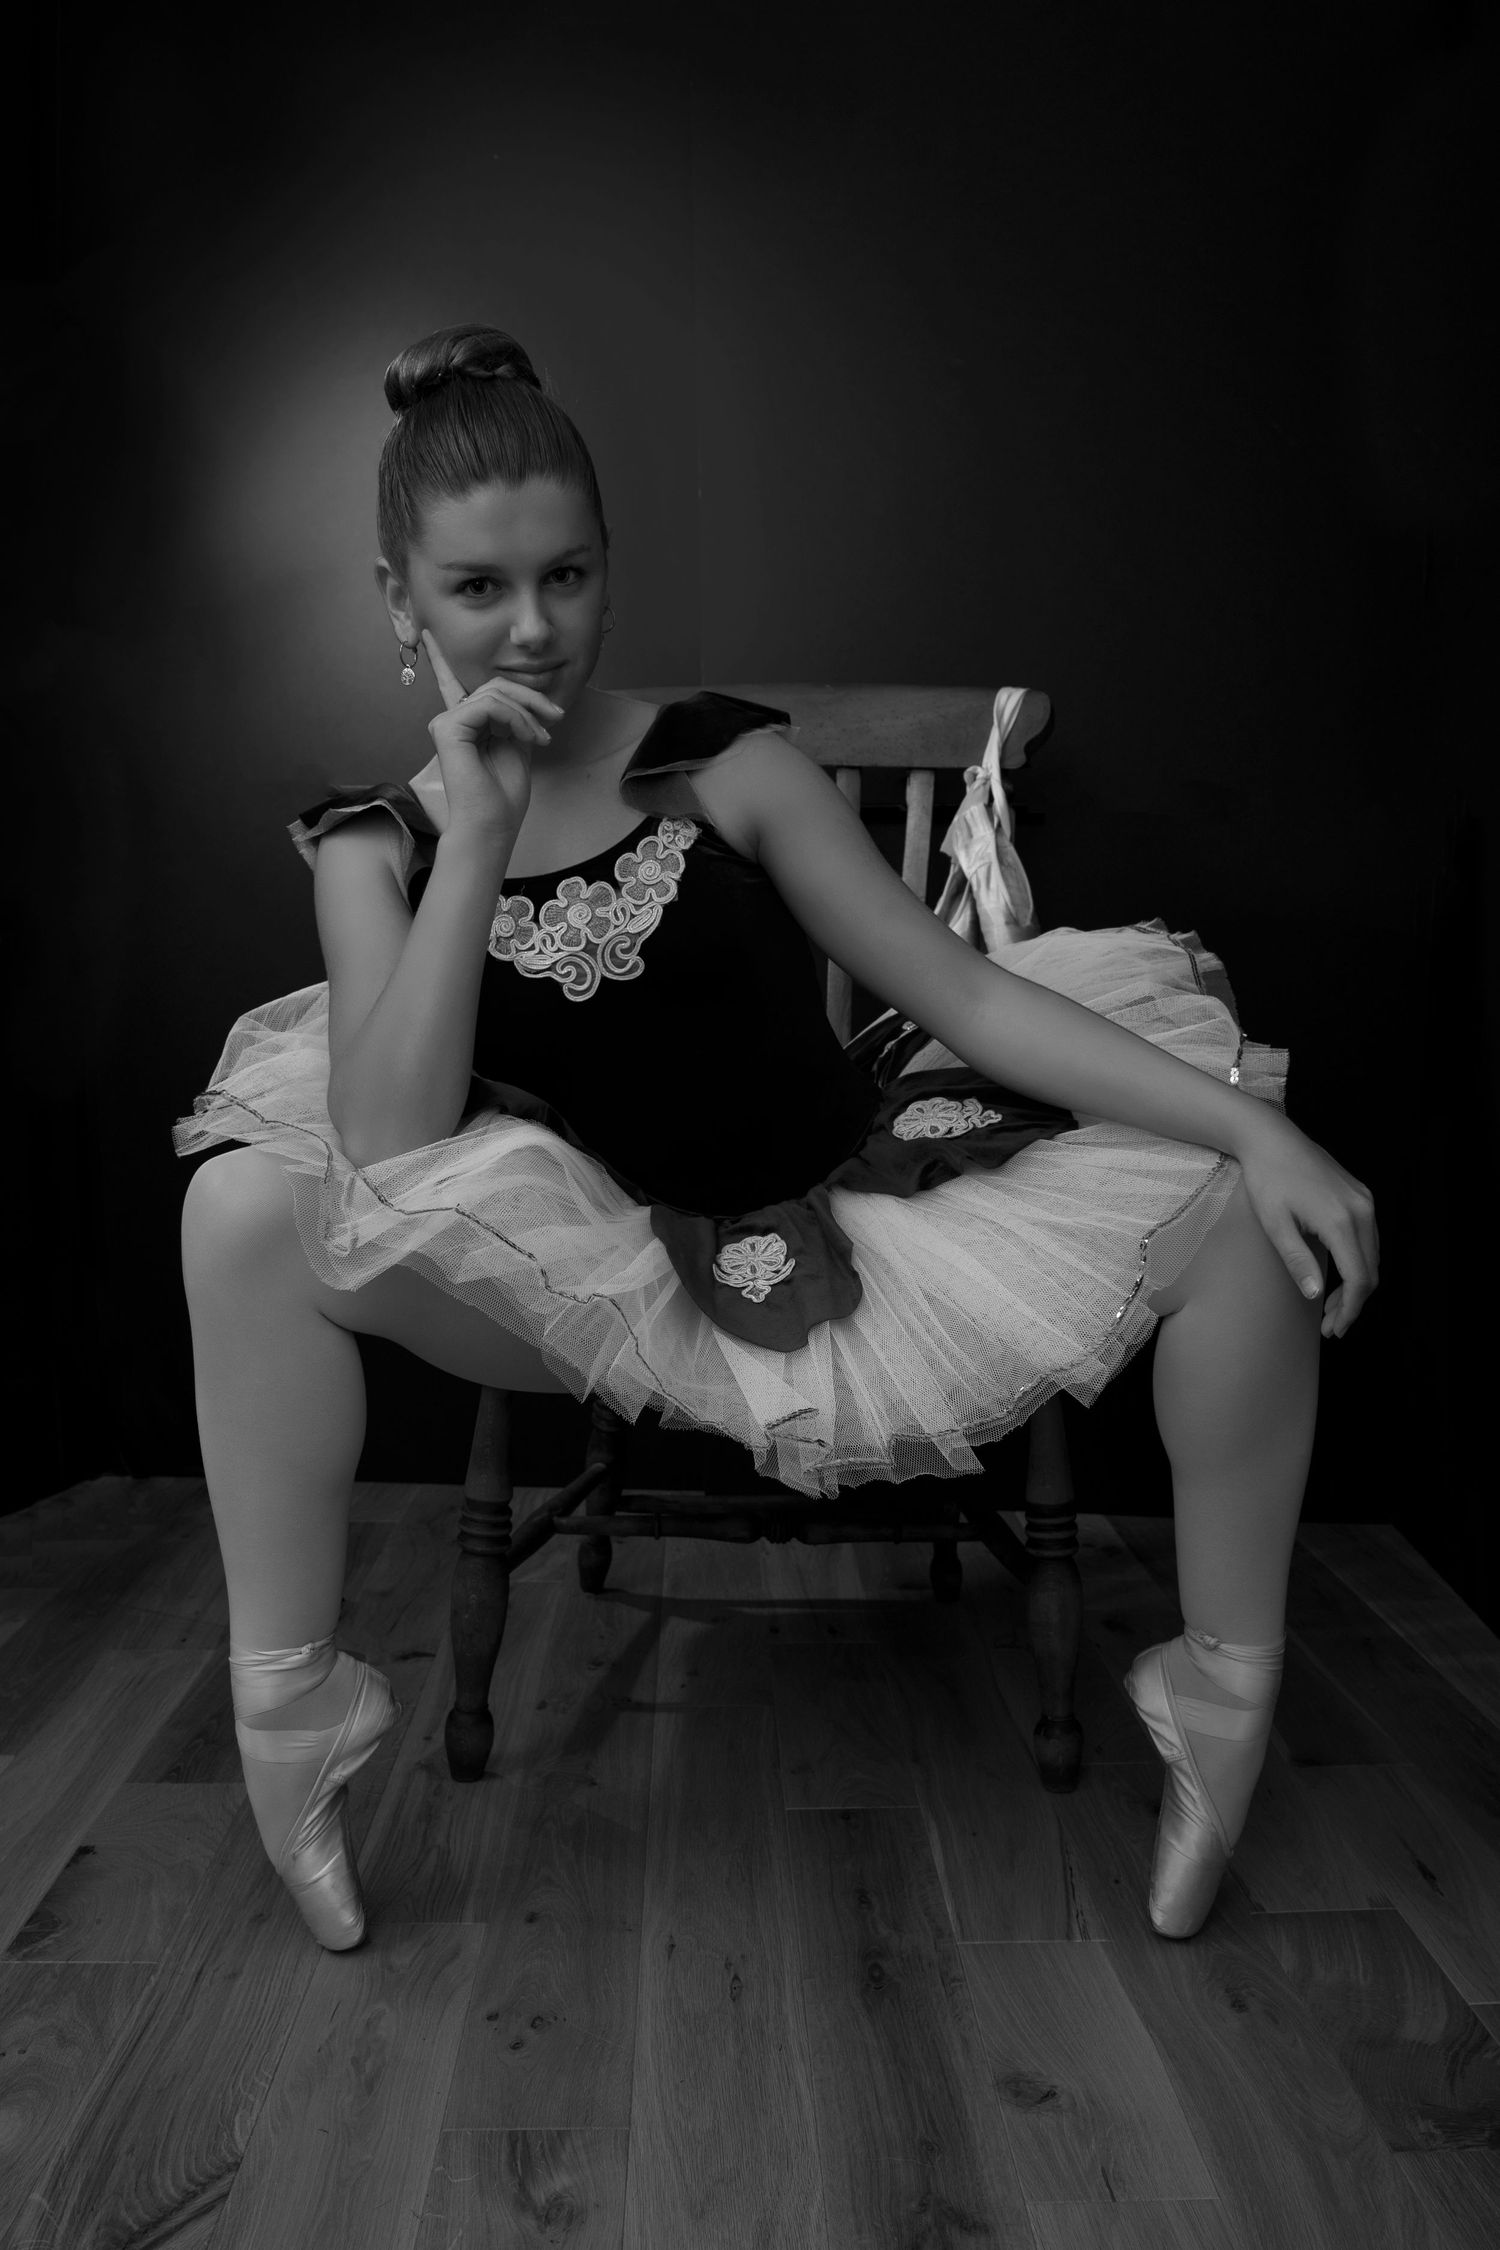 black and white image of ballerina wearing tutu, sat on chair.